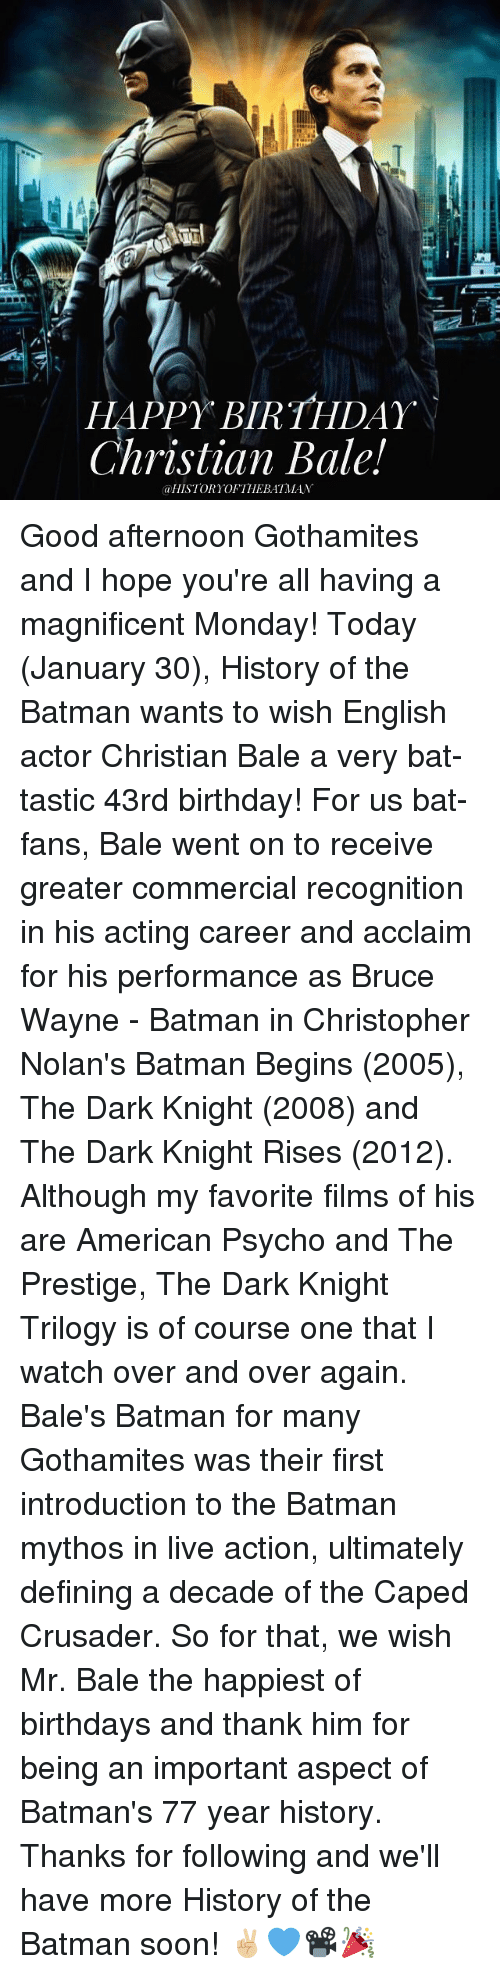 dark knight rises: HAPPY BIRTHDAY  Christian Bale!  @HISTORY OF THE BATMAN Good afternoon Gothamites and I hope you're all having a magnificent Monday! Today (January 30), History of the Batman wants to wish English actor Christian Bale a very bat-tastic 43rd birthday! For us bat-fans, Bale went on to receive greater commercial recognition in his acting career and acclaim for his performance as Bruce Wayne - Batman in Christopher Nolan's Batman Begins (2005), The Dark Knight (2008) and The Dark Knight Rises (2012). Although my favorite films of his are American Psycho and The Prestige, The Dark Knight Trilogy is of course one that I watch over and over again. Bale's Batman for many Gothamites was their first introduction to the Batman mythos in live action, ultimately defining a decade of the Caped Crusader. So for that, we wish Mr. Bale the happiest of birthdays and thank him for being an important aspect of Batman's 77 year history. Thanks for following and we'll have more History of the Batman soon! ✌🏼️💙📽🎉